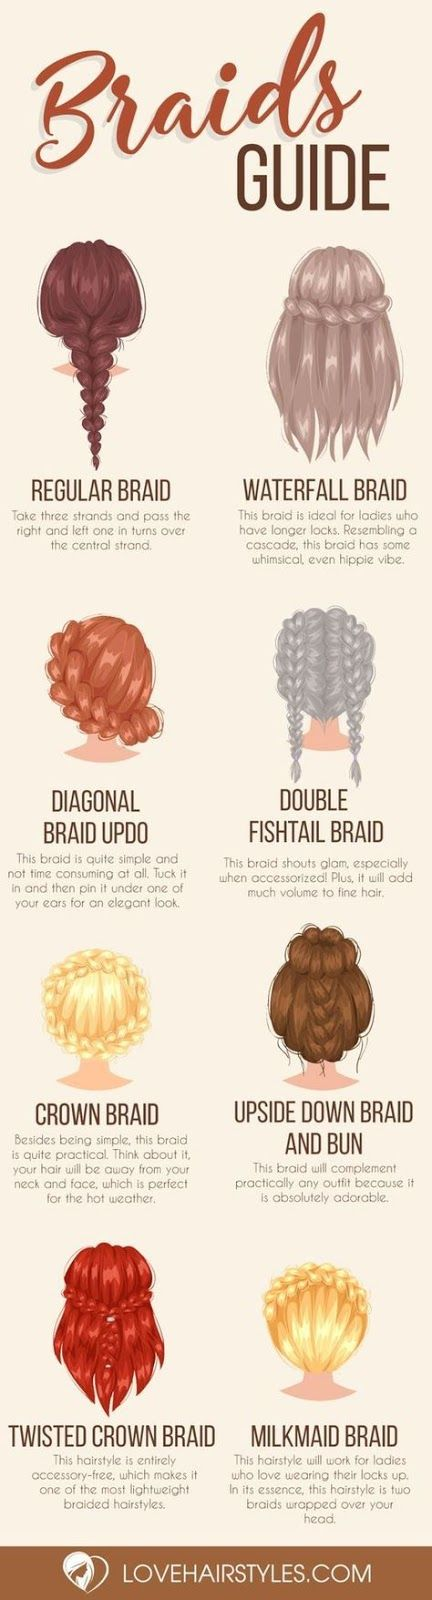 35+ POPULAR BRAIDED HAIRSTYLES FOR LONG HAIR